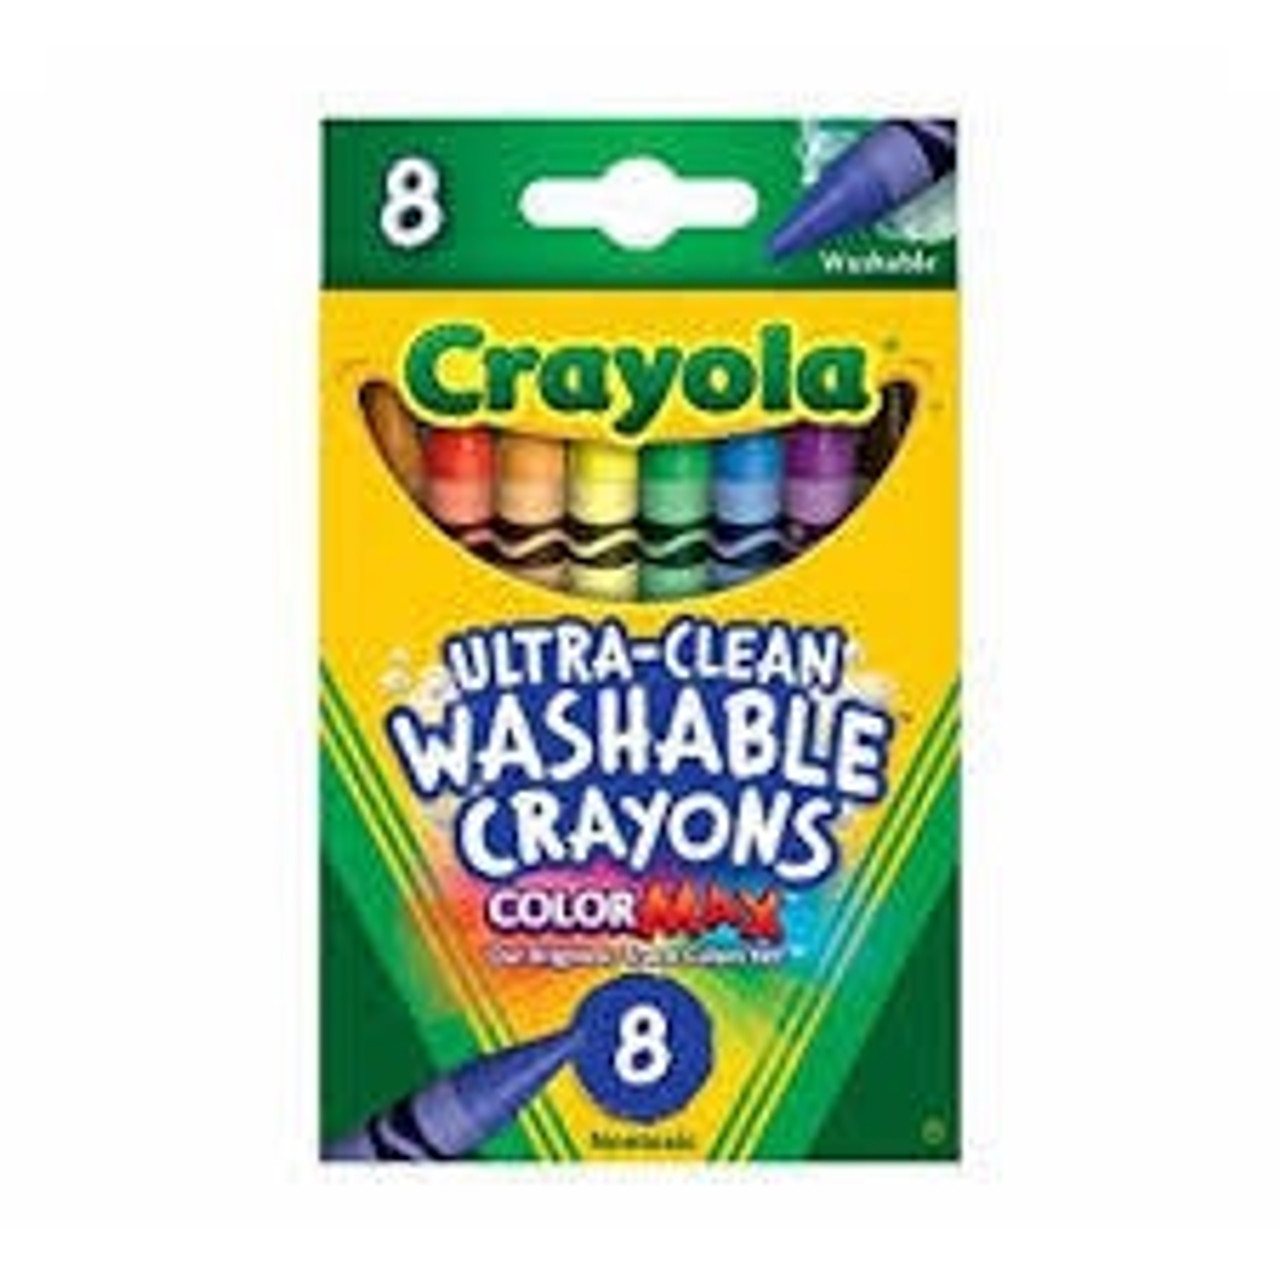 8CT WASHABLE CRAYONS CRAYOLA